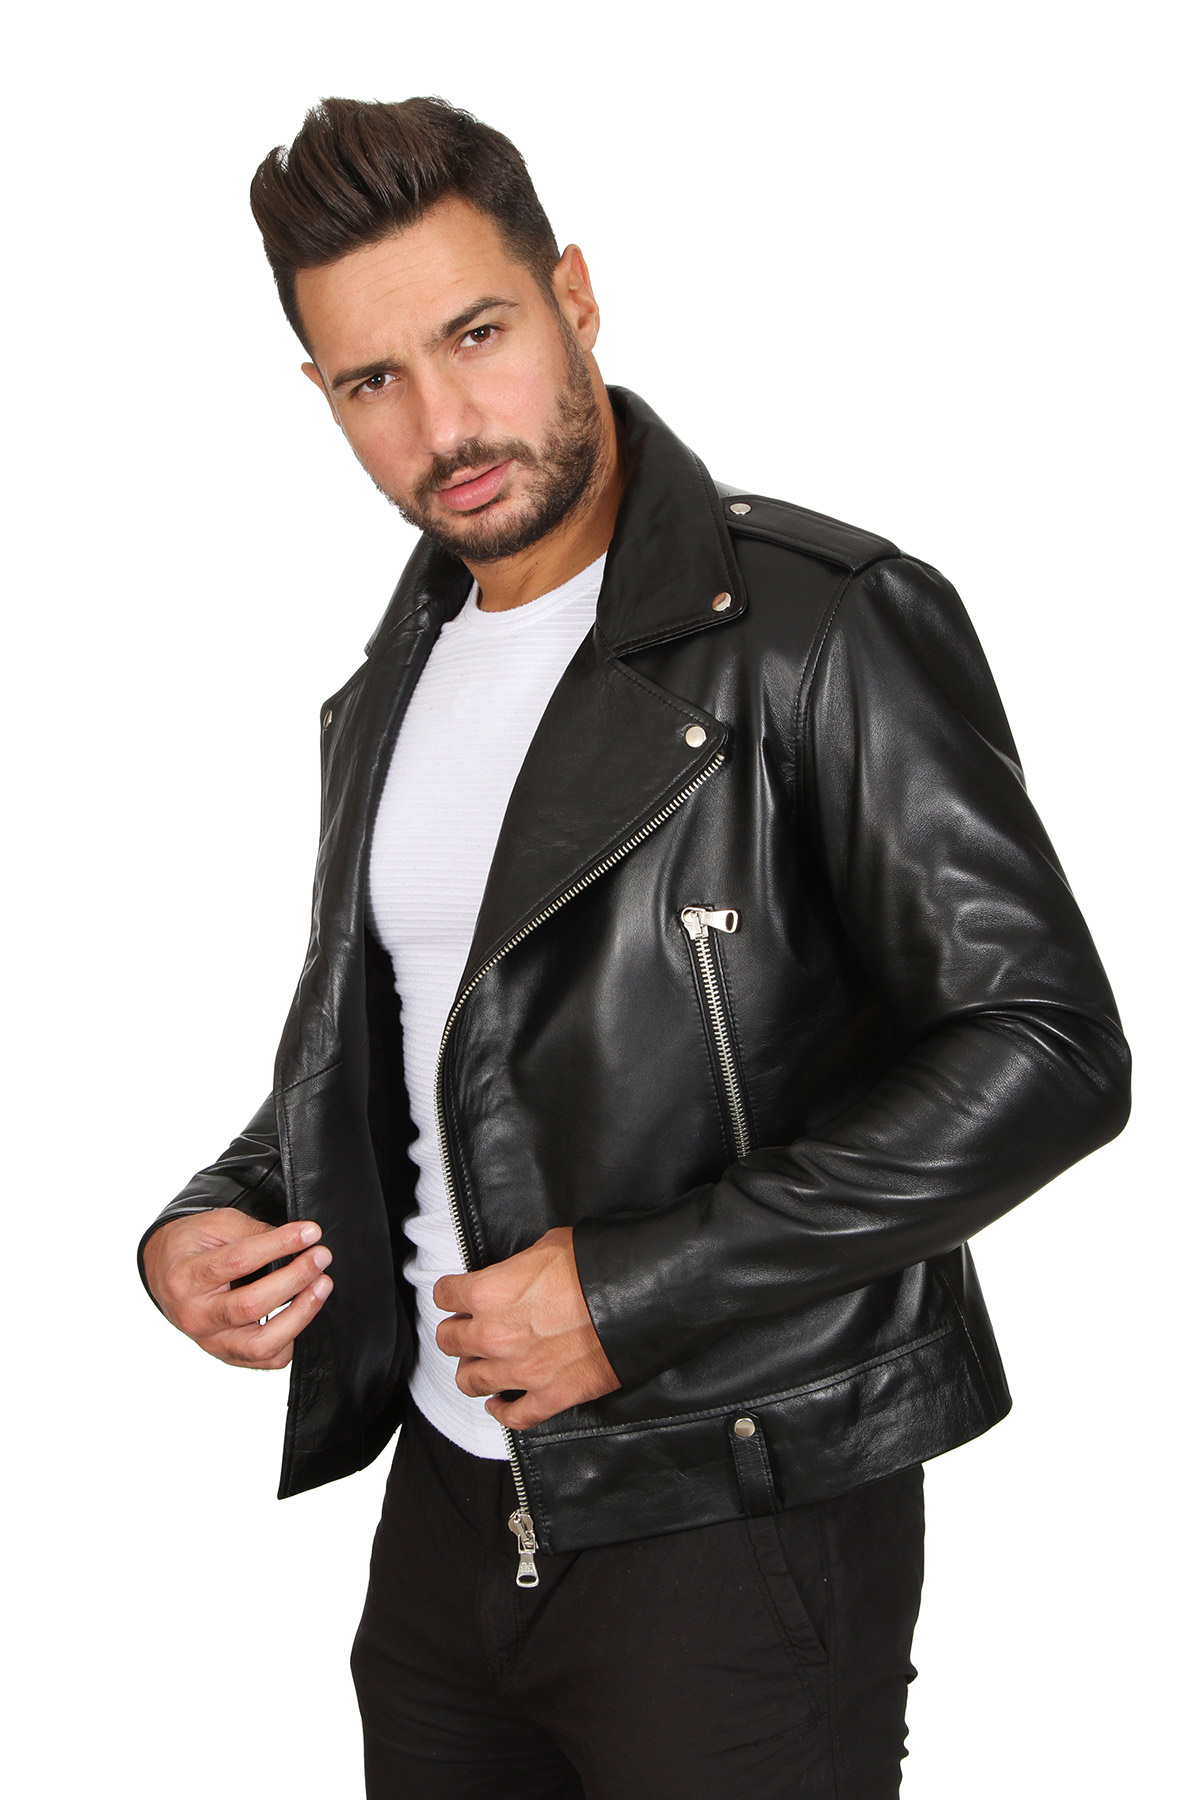 Discount Leather Jackets